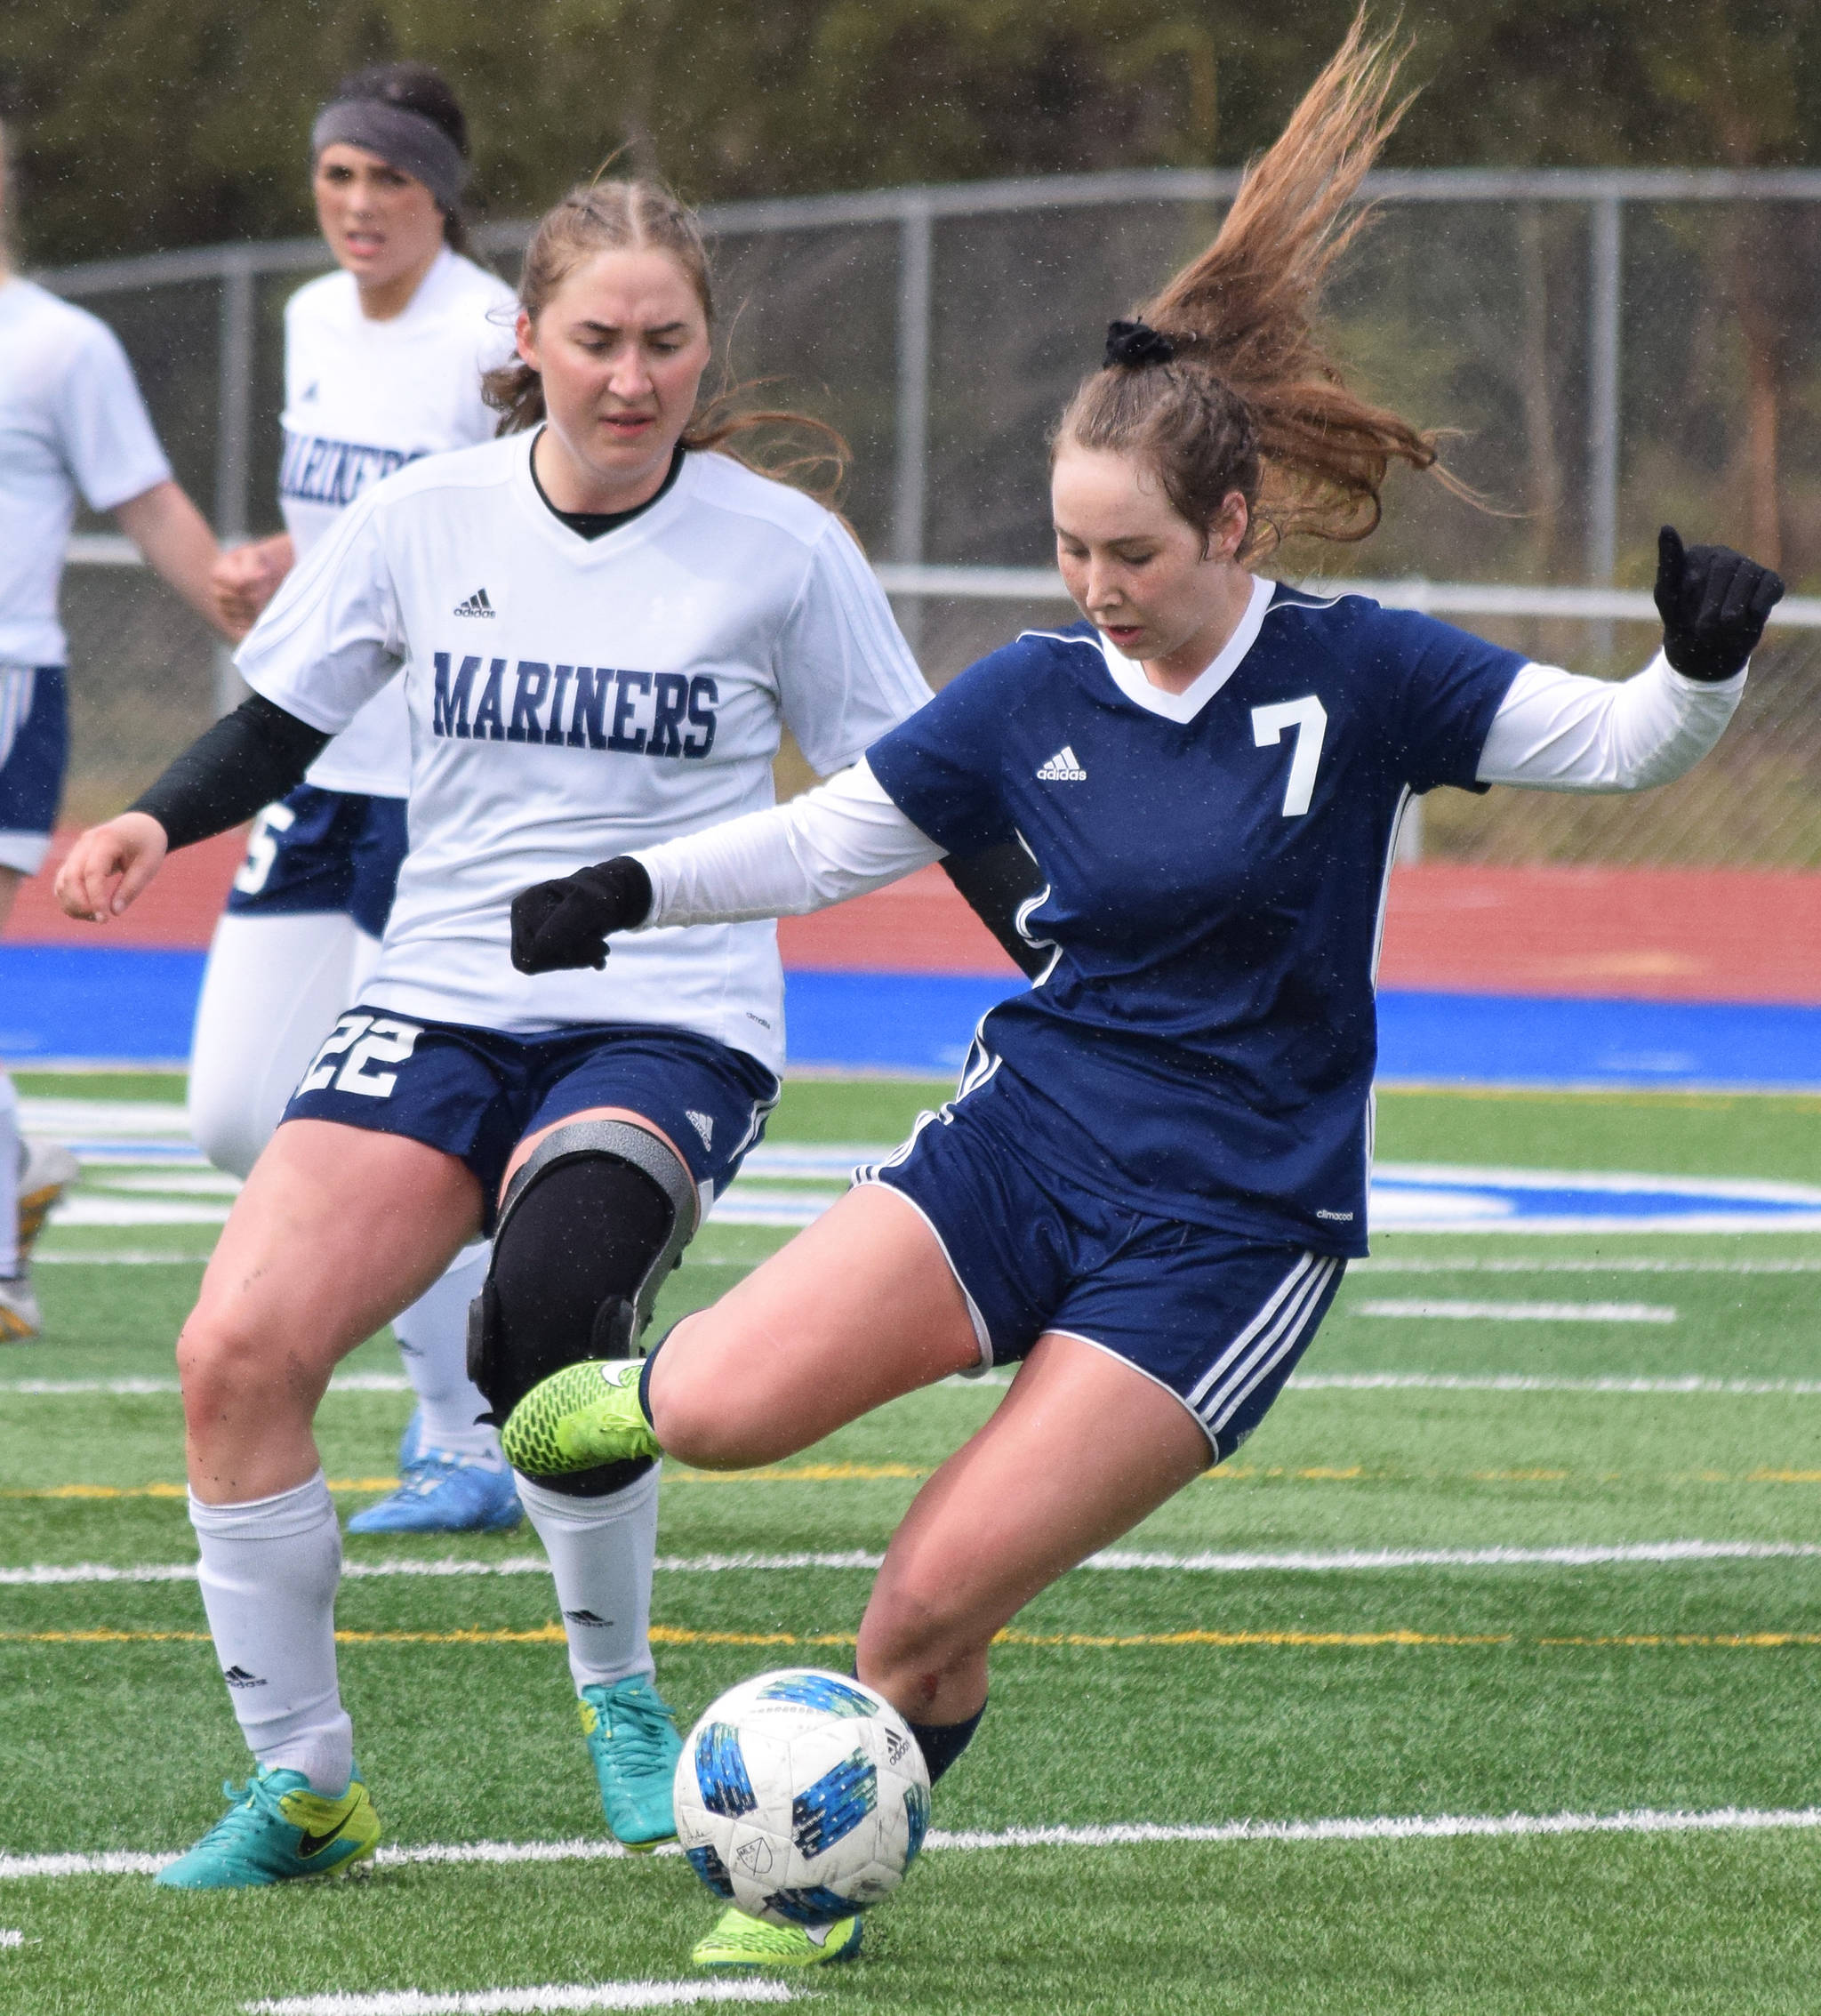 Soldotna's Journey Miller (7) unleashes a kick in front of Homer's Brenna McCarron Saturday, May 11, 2019, in a Peninsula Conference game in Soldotna, Alaska. (Photo by Joey Klecka/Peninsula Clarion)